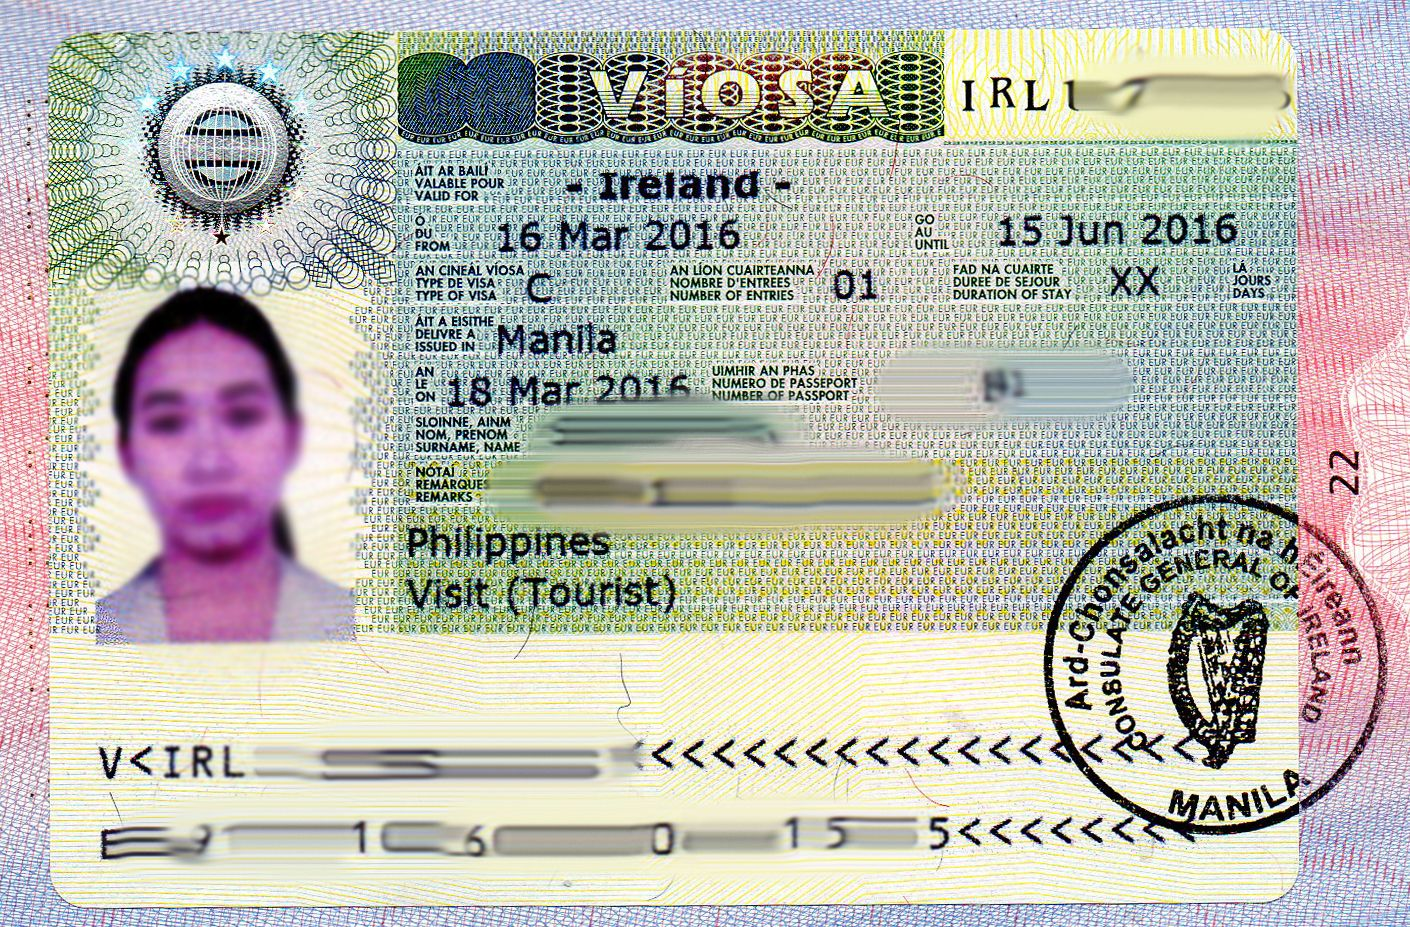 applying for drivers license ireland